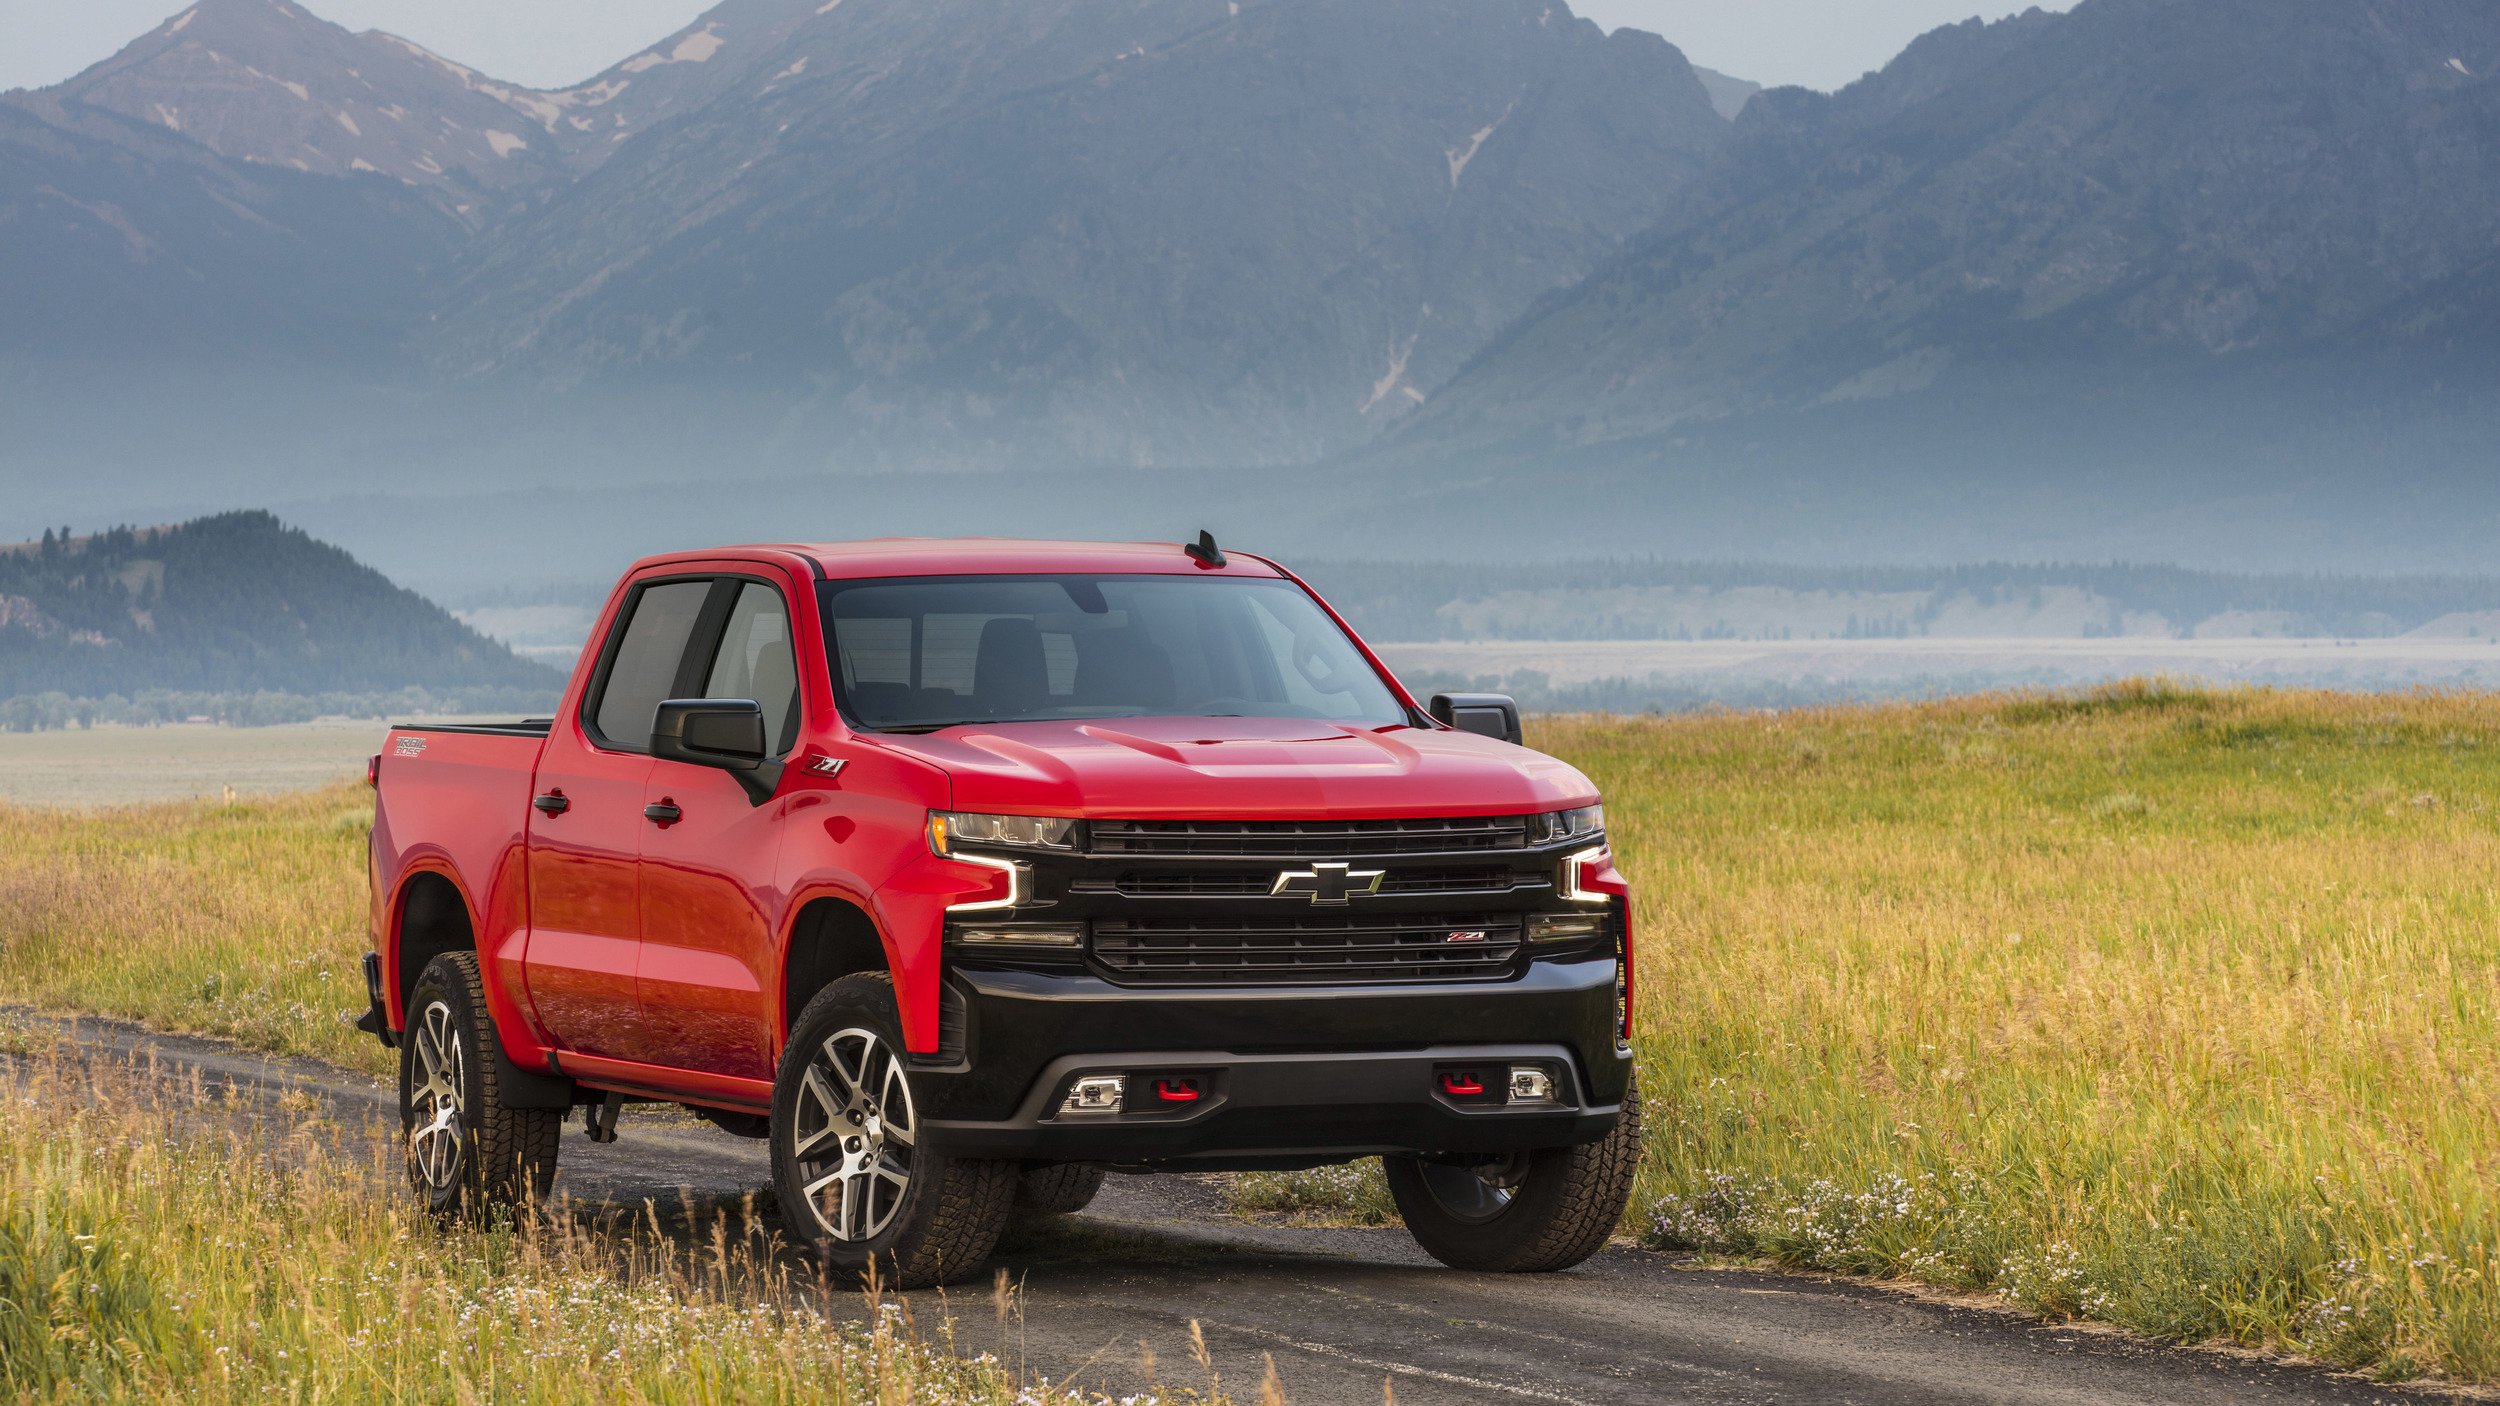 2019 Chevy Silverado 1500 Trail Boss quick spin review ...